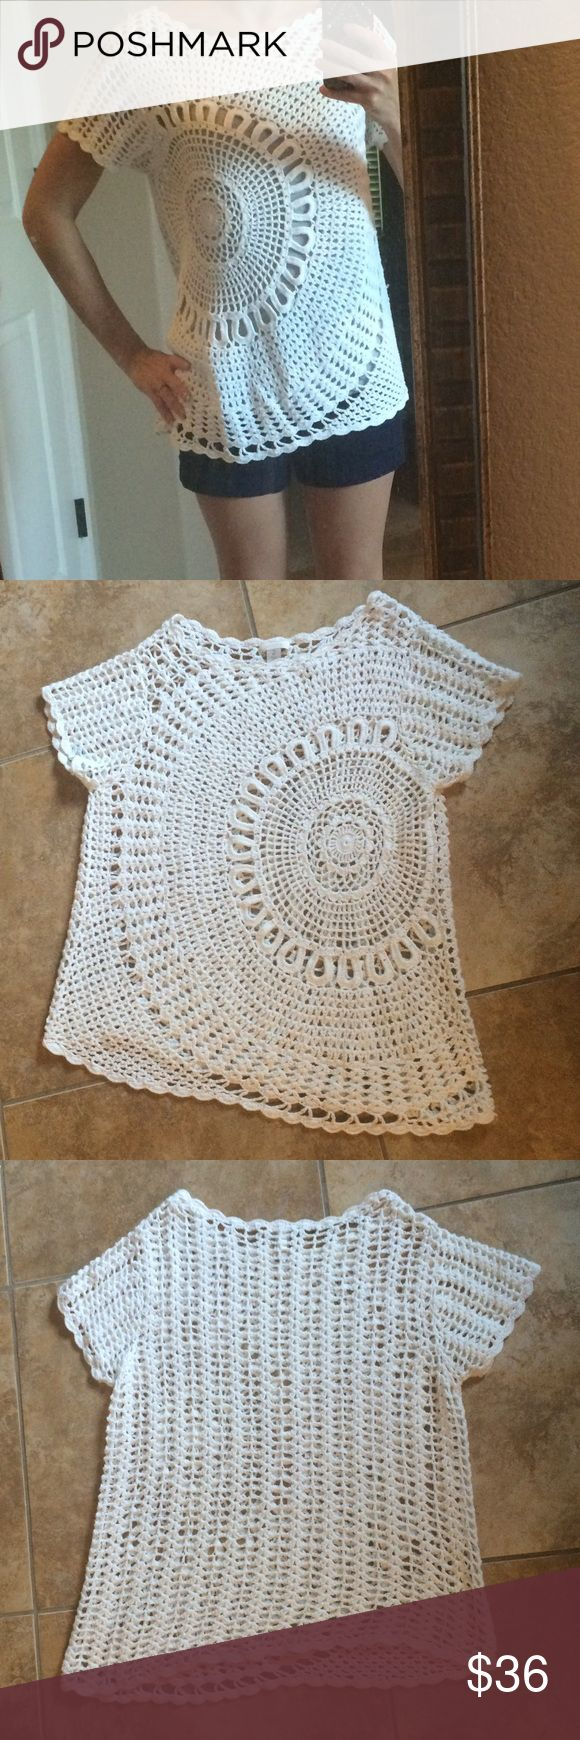 Crochet boho sun top Beautiful top! New!! Crochet boho sun top, gorgeous pattern. Medium to thick weave, very nice quality. Brand is Chico's, size 2 which seems to fit like a loose small or a fitted medium is my guess. I am an XS and it's a little too big! Chico's Tops Blouses